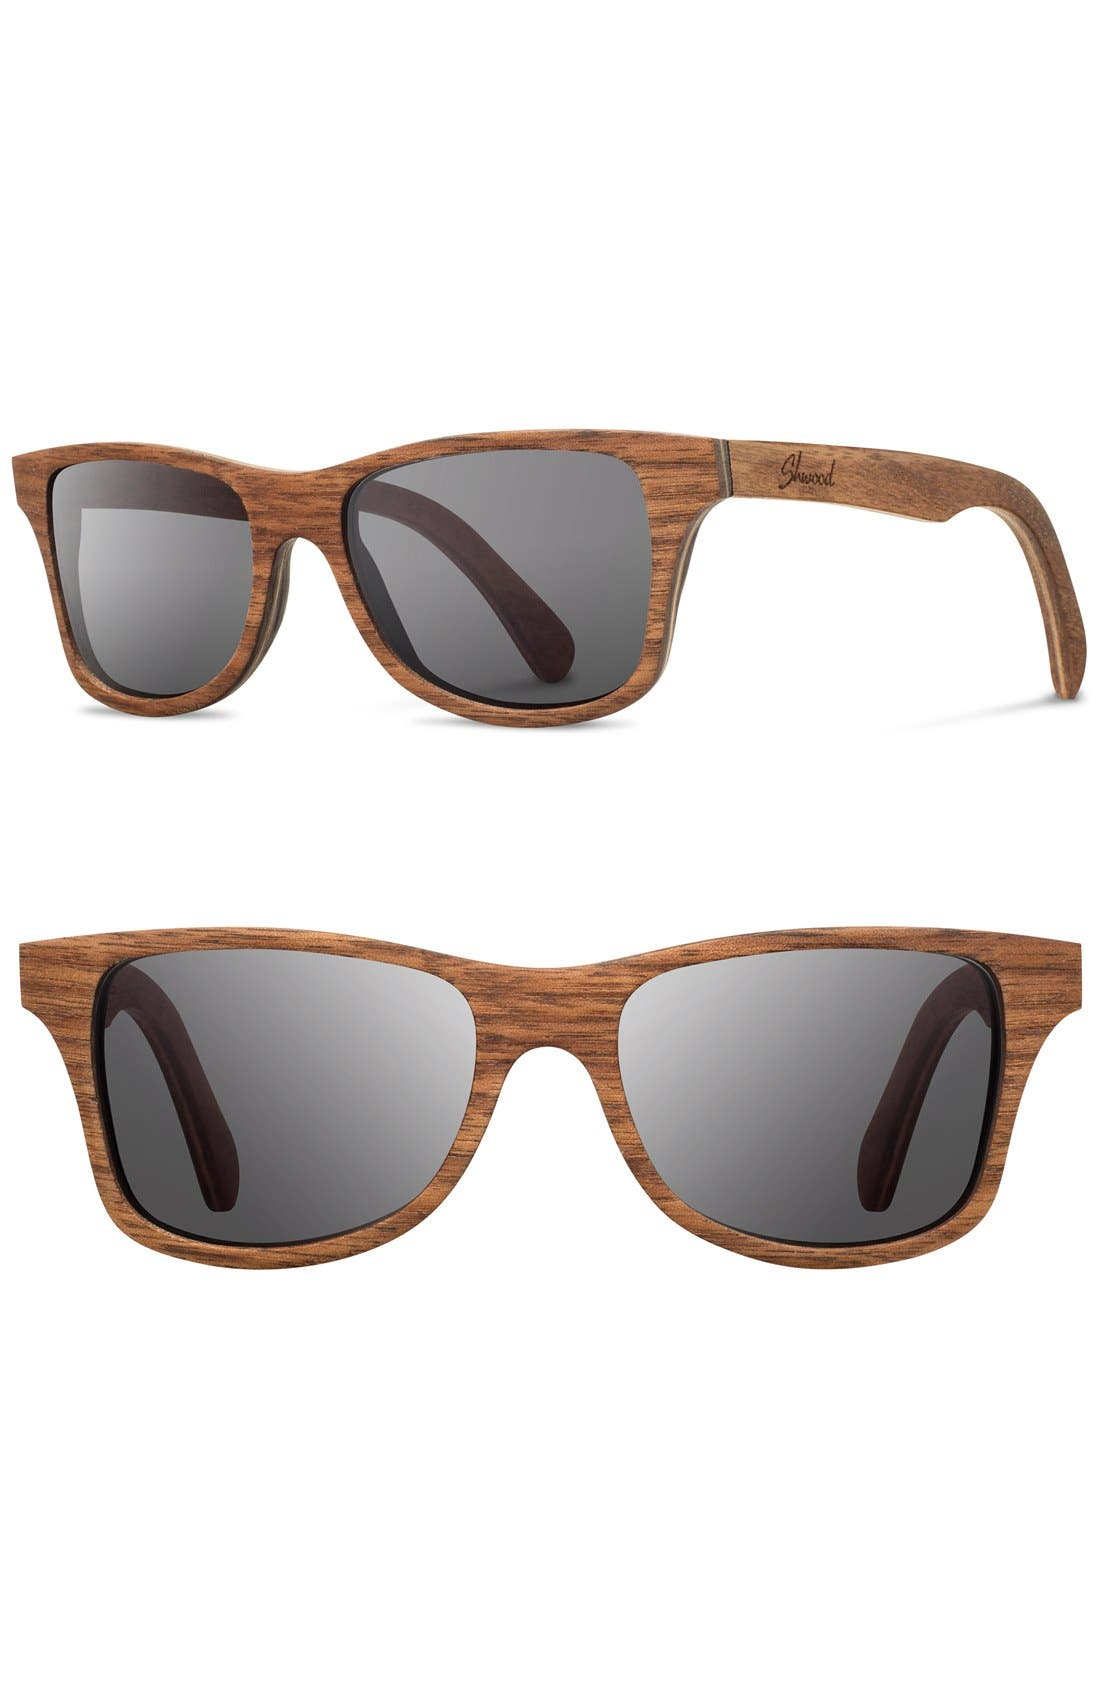 'Canby' 54mm Wood Sunglasses,                         Main,                         color, Walnut